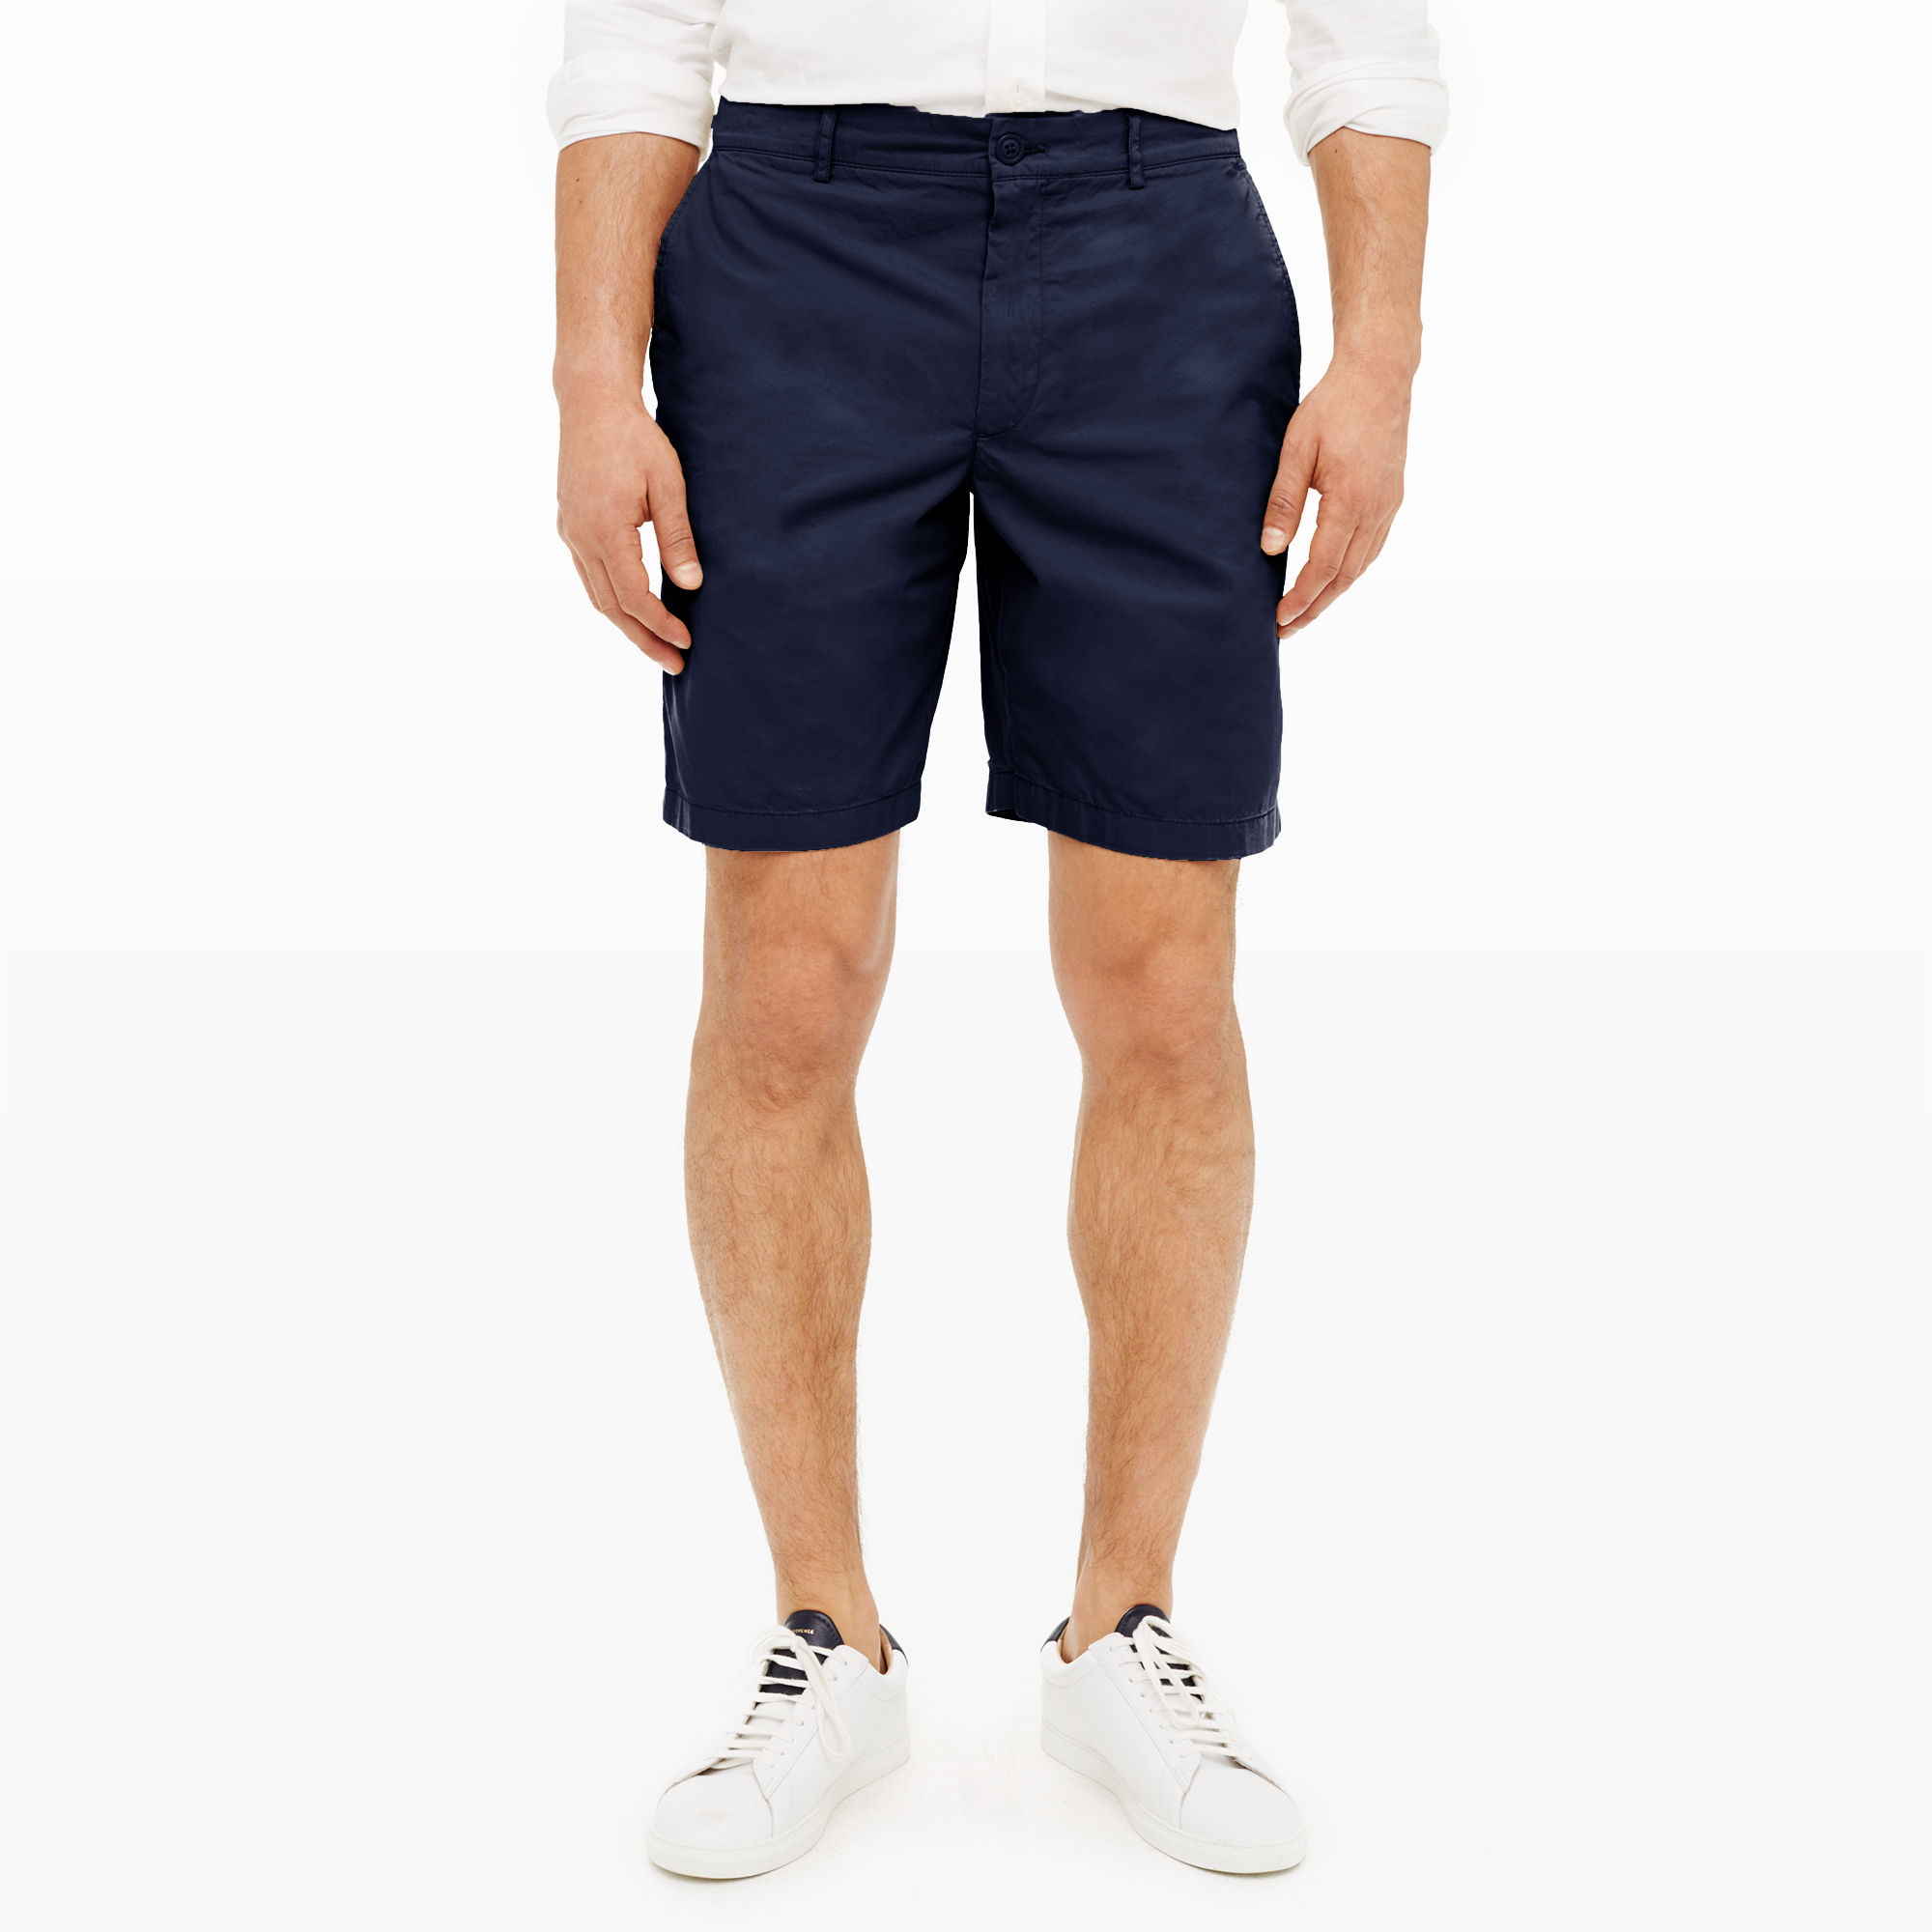 "Club Monaco 9"" Cotton"